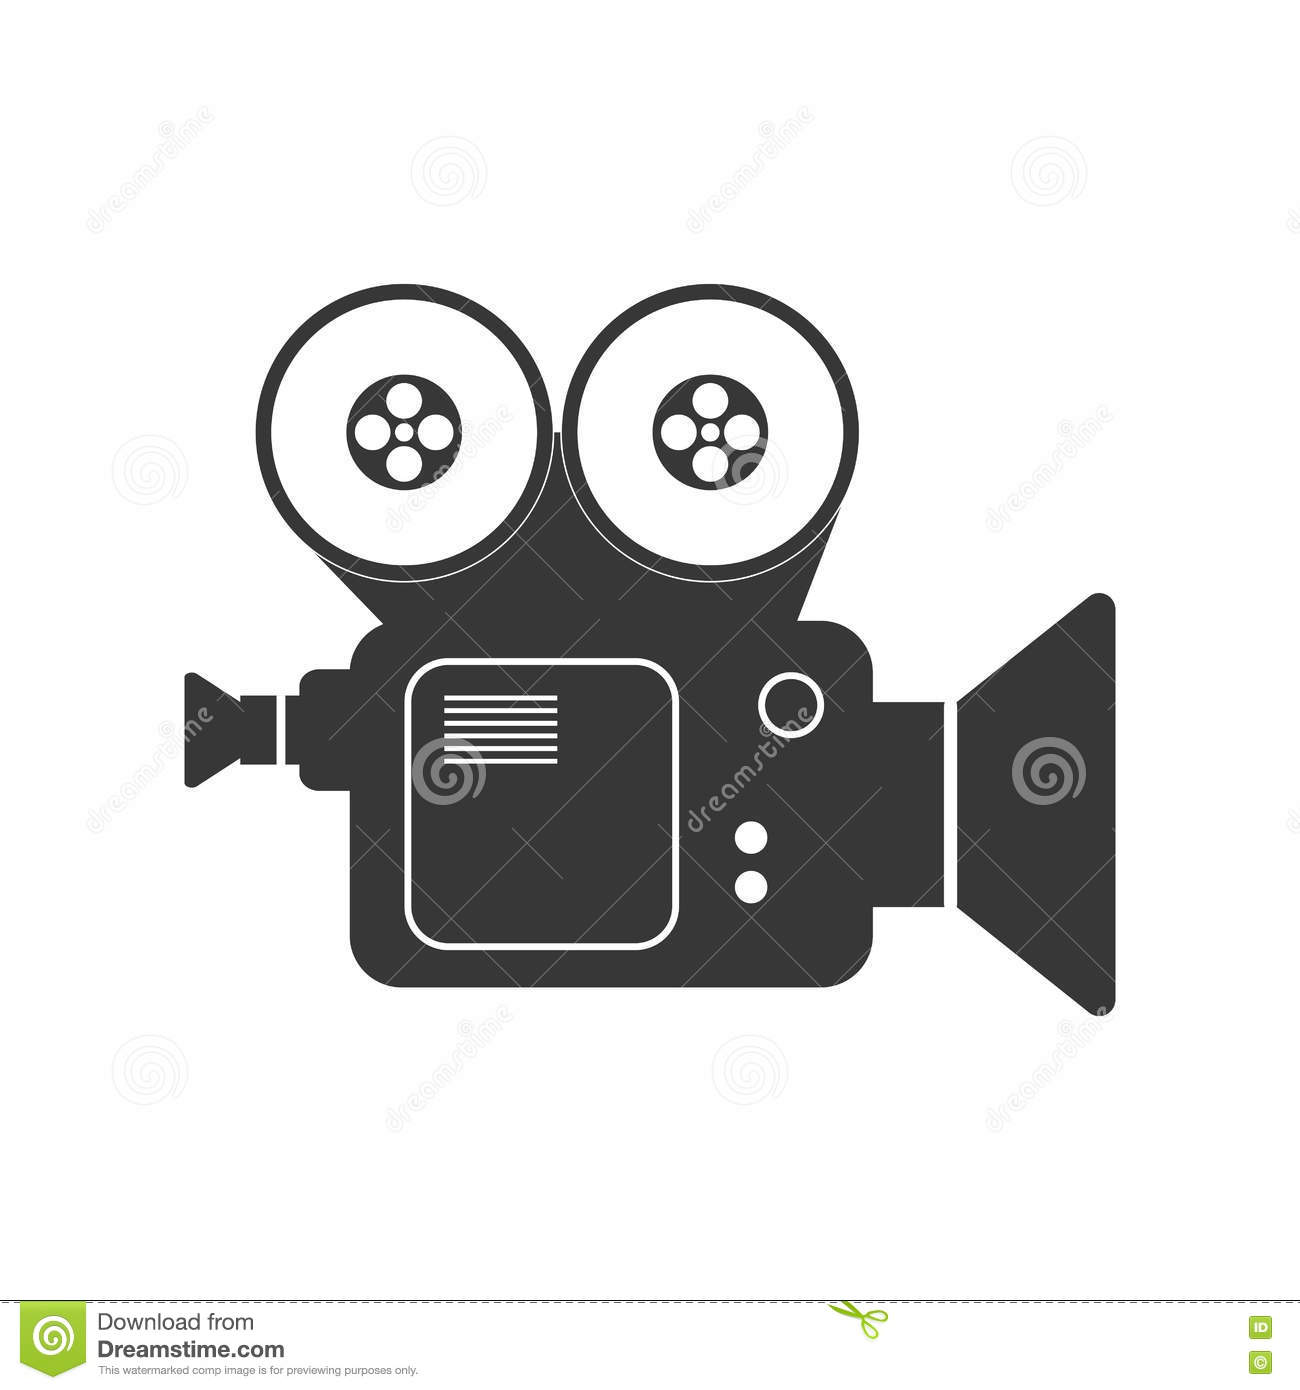 Icone De Camera Video Conception De Film Dessin De Vecteur Illustration Stock Illustration Du Dessin Film 74033768